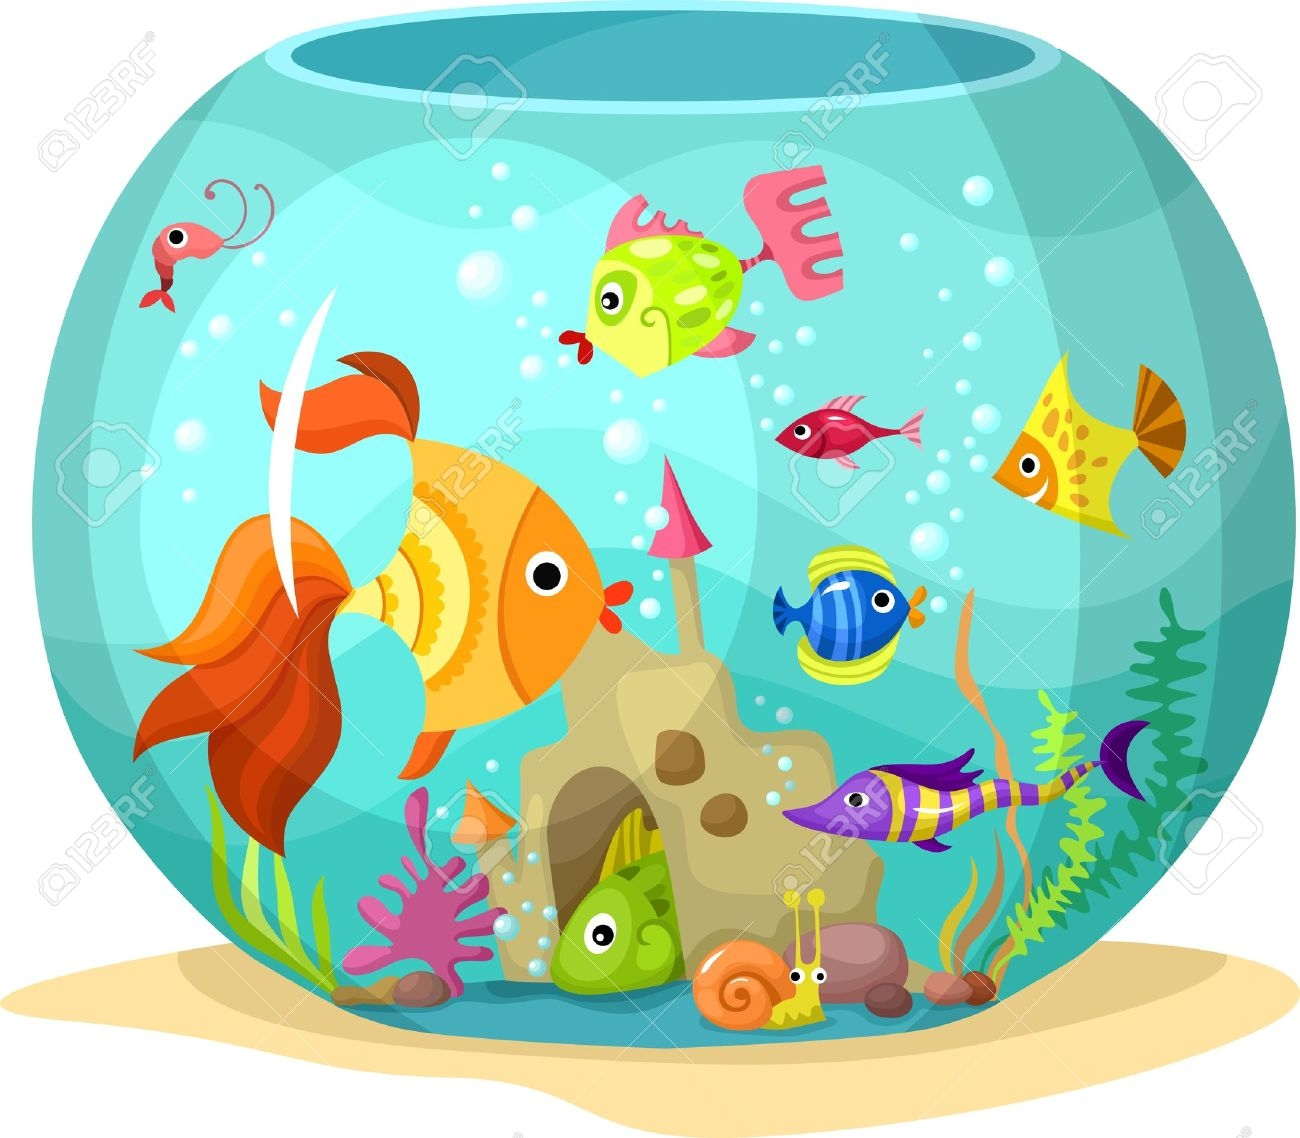 Awesome design digital collection. Aquarium clipart pet fish